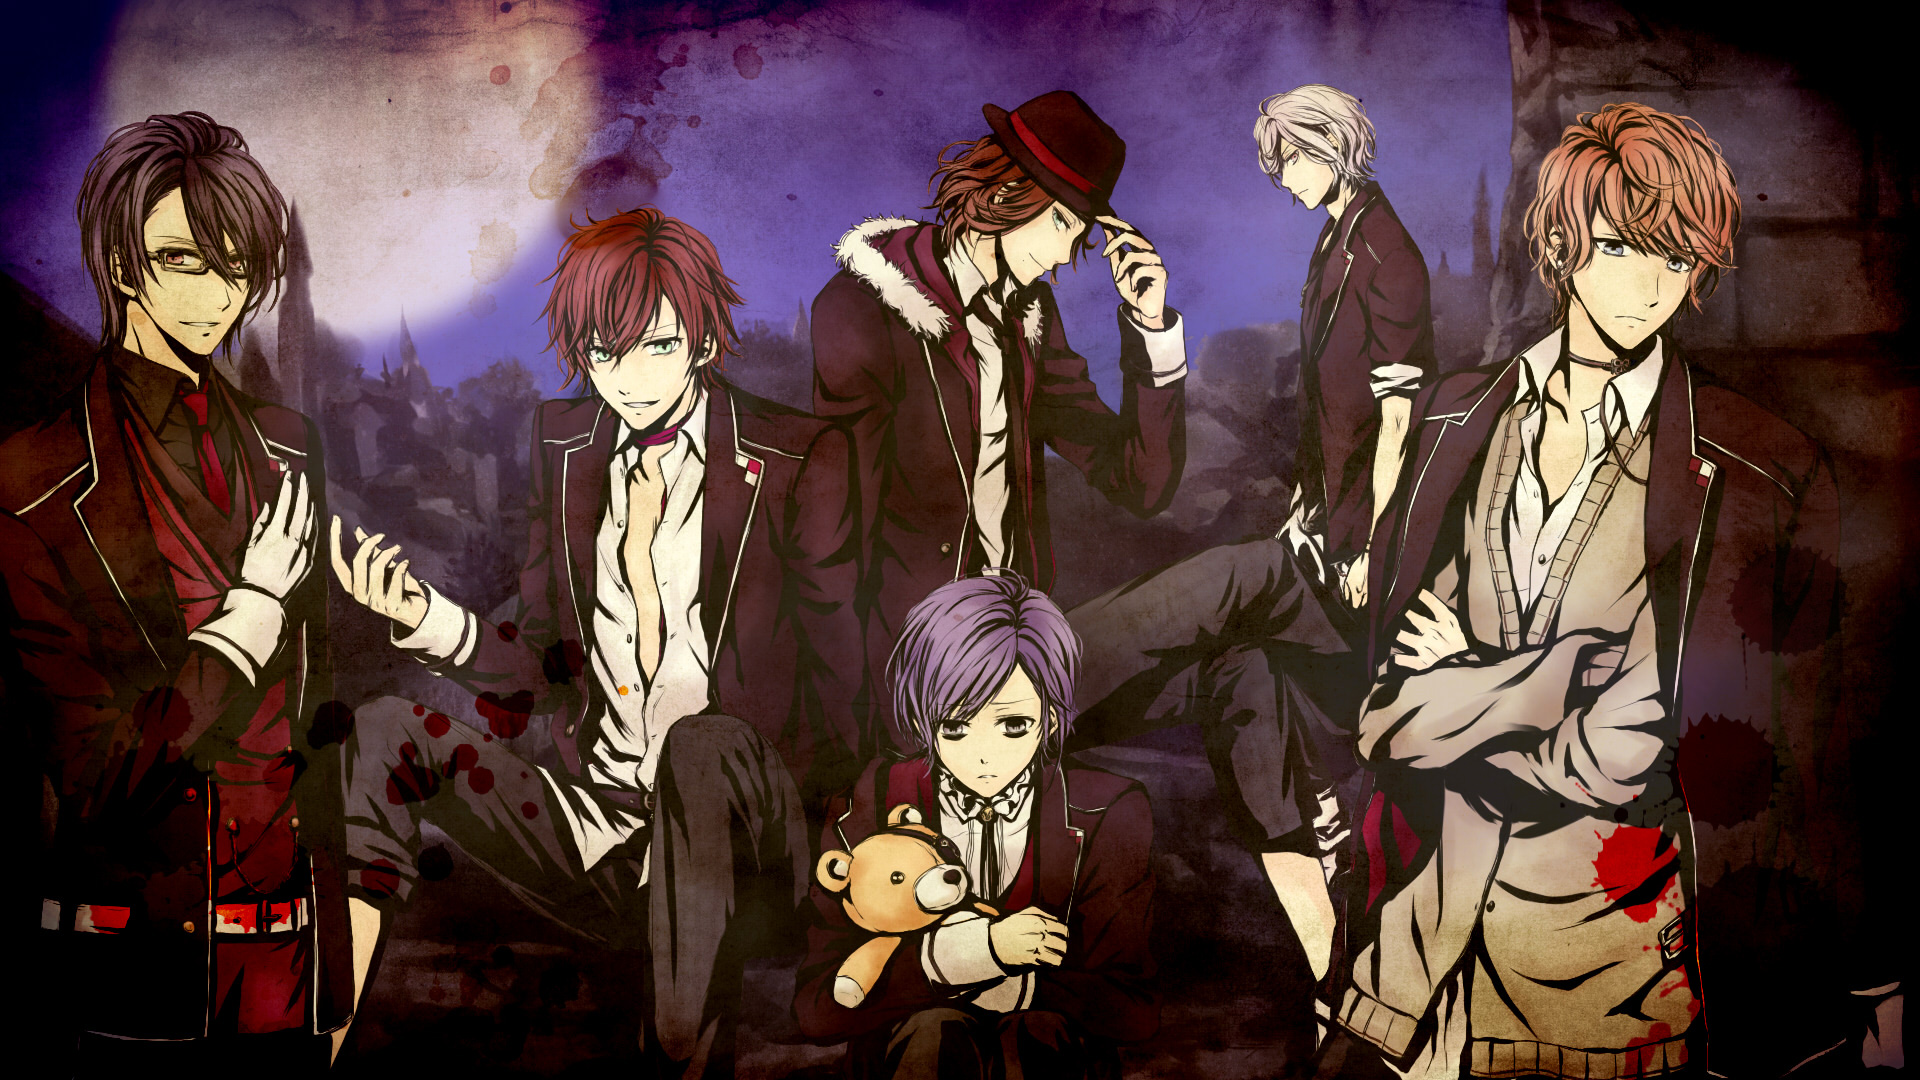 Diabolik_Lovers_~Haunted_dark_bridal~_full_1068967.jpg